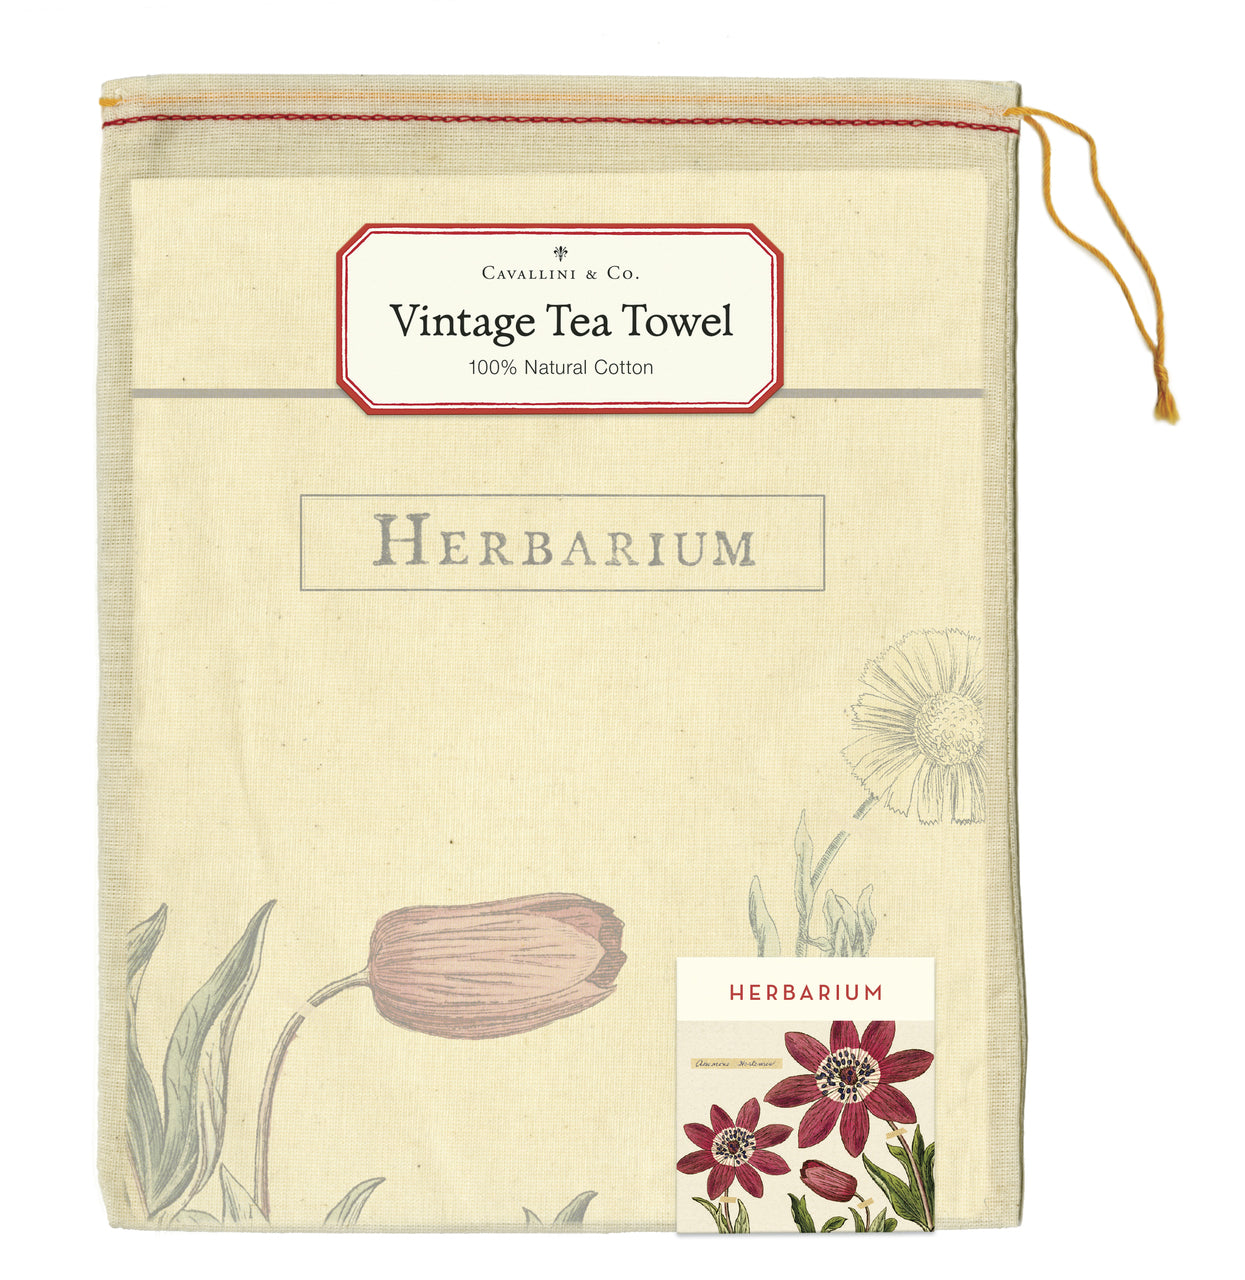 Tea towels come packaged in a hand- sewn muslin bag, making them the perfect gift.